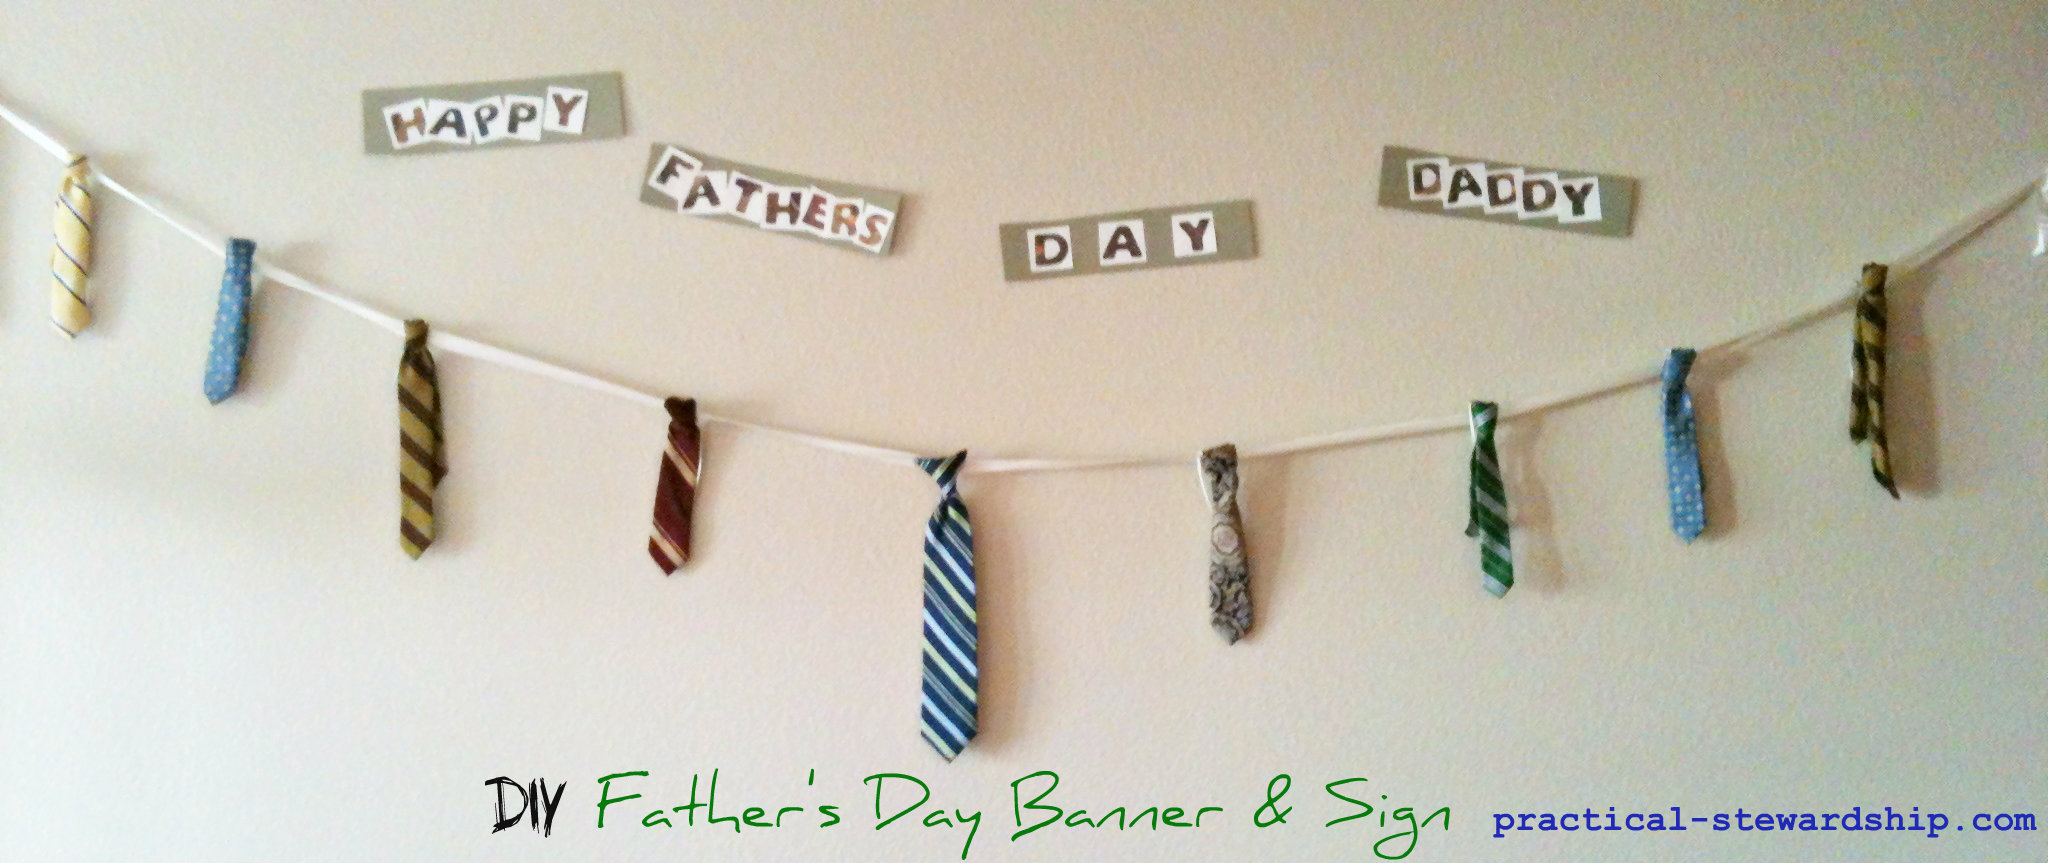 DIY Upcycled Ties to Father's Day Banner & Sign